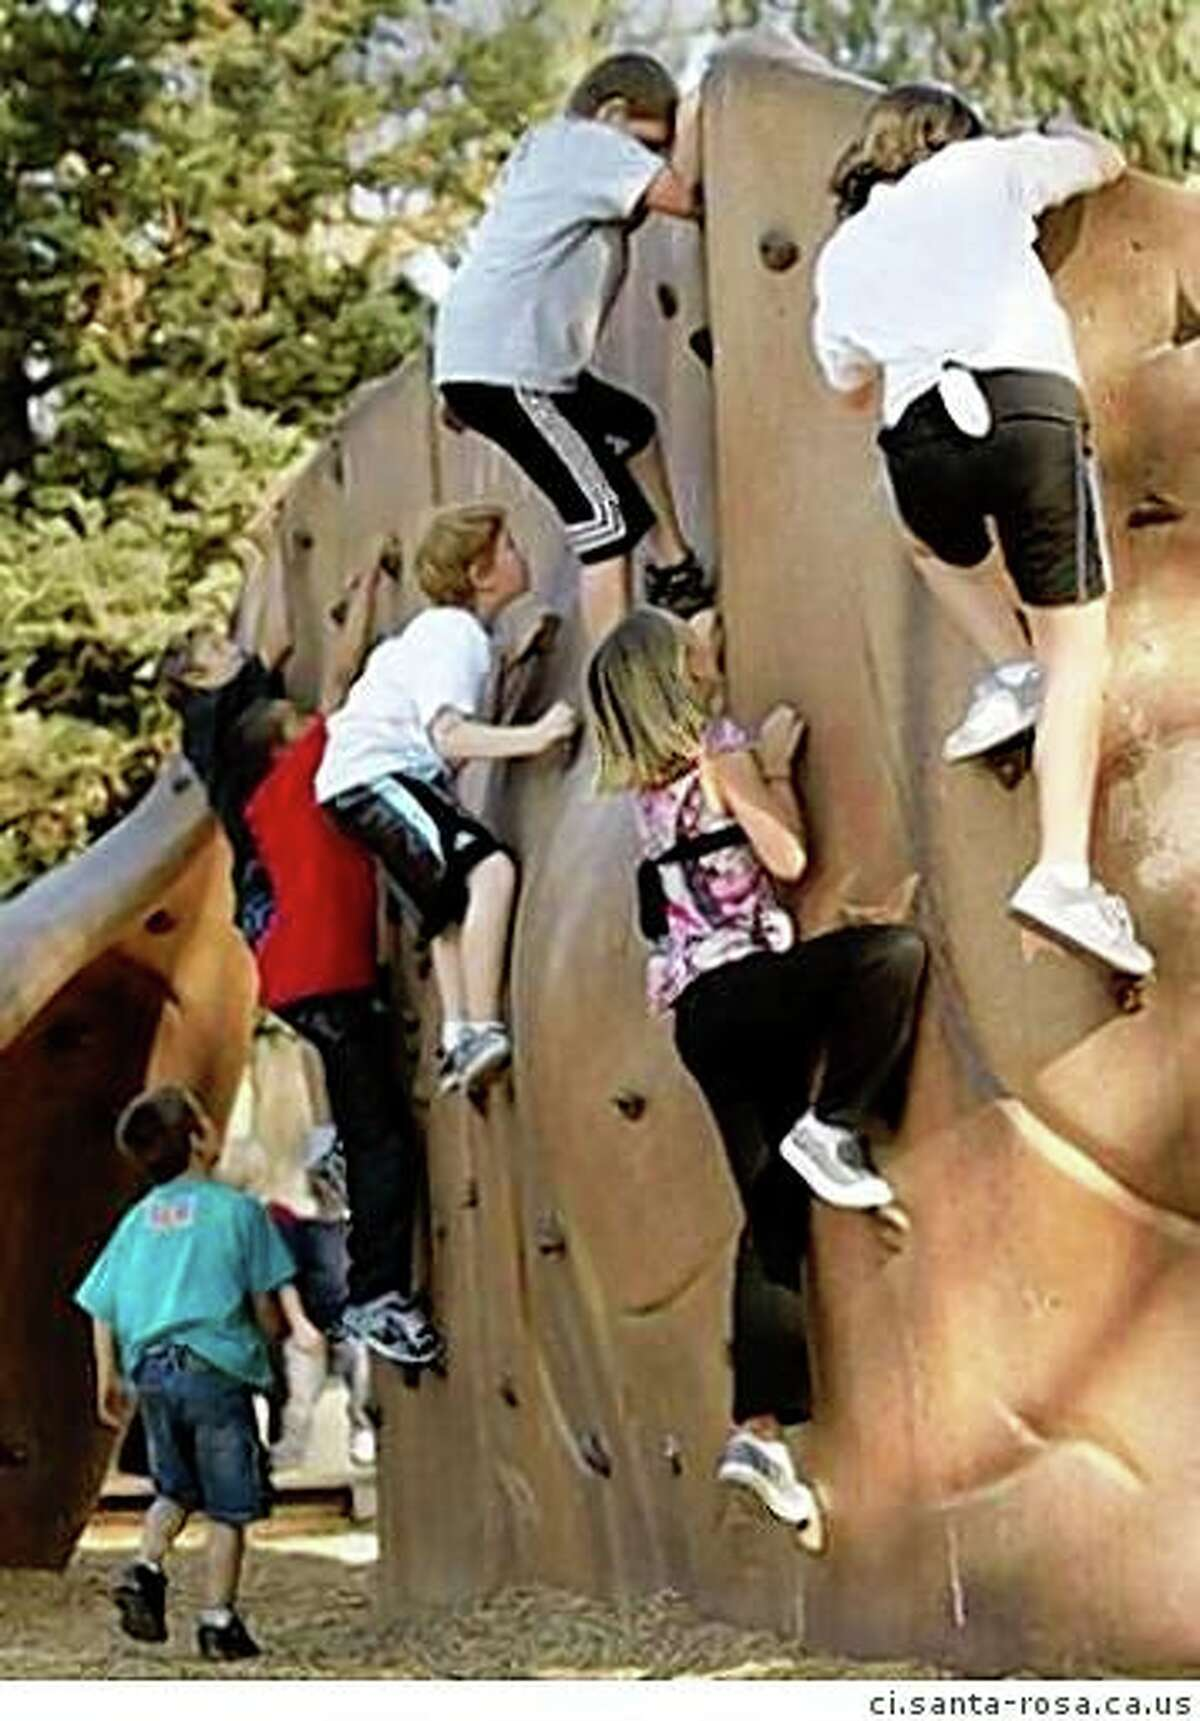 The climbing wall at Howarth Park in Santa Rosa.